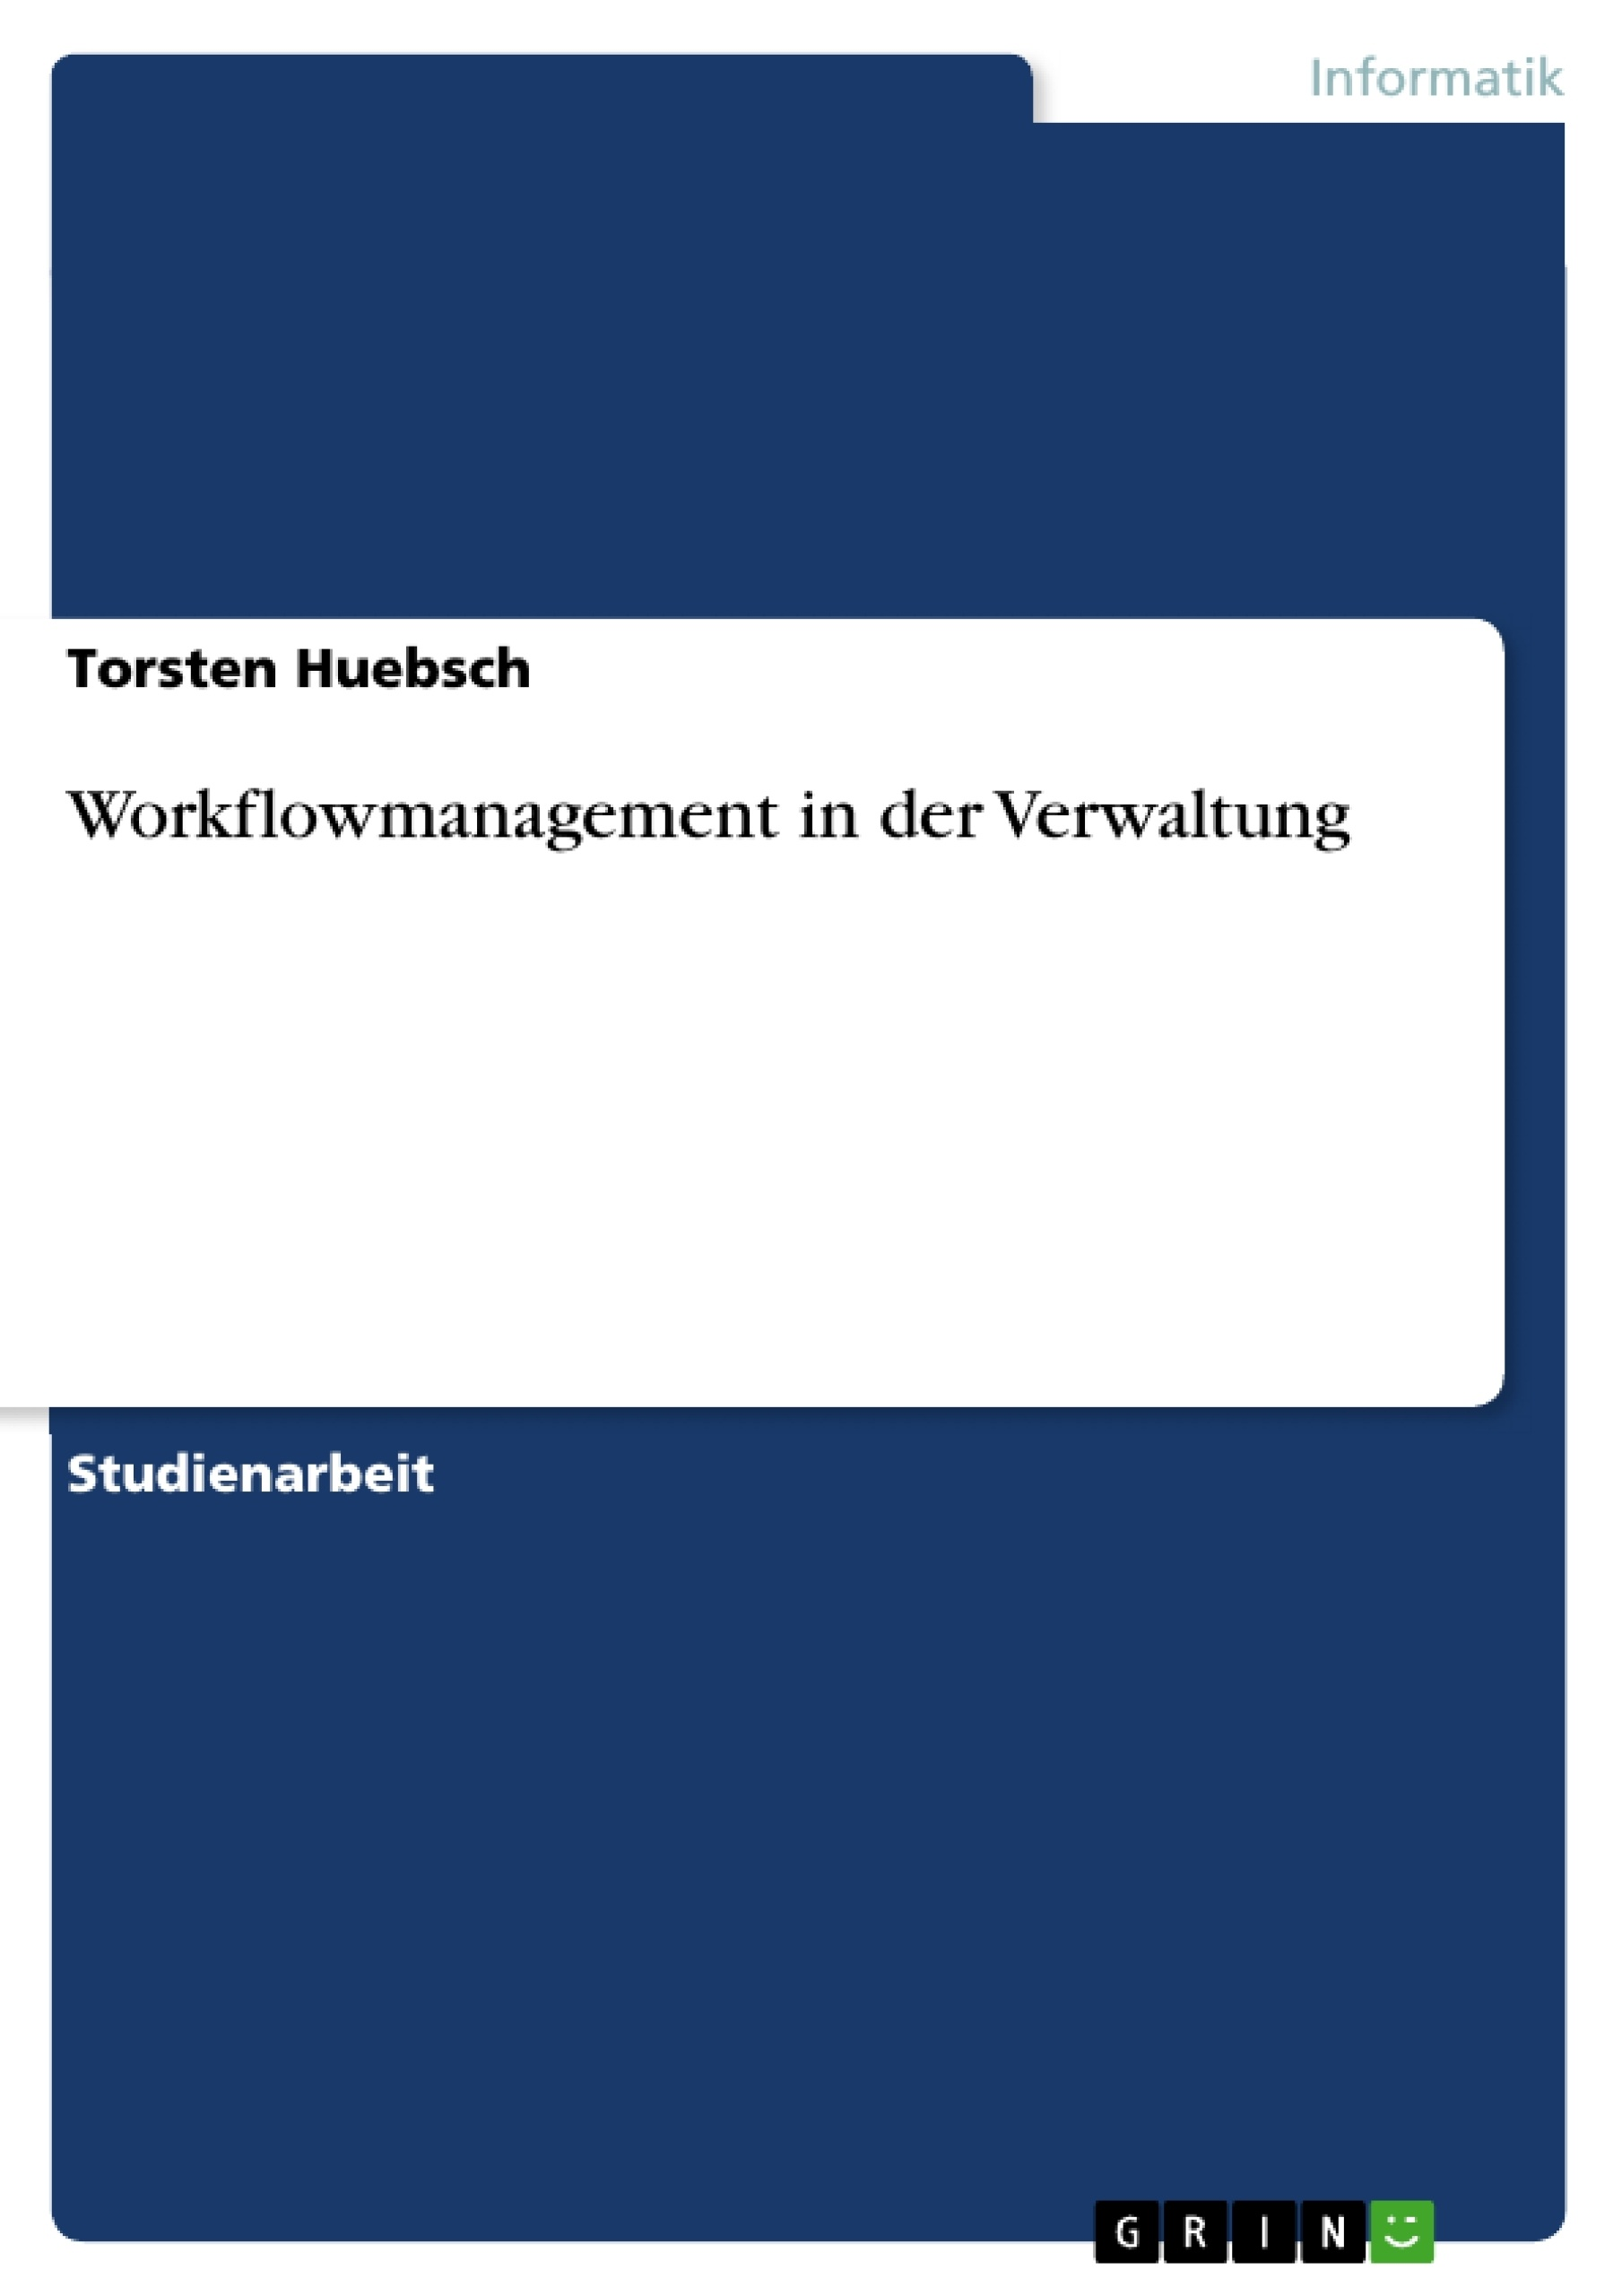 Titel: Workflowmanagement in der Verwaltung